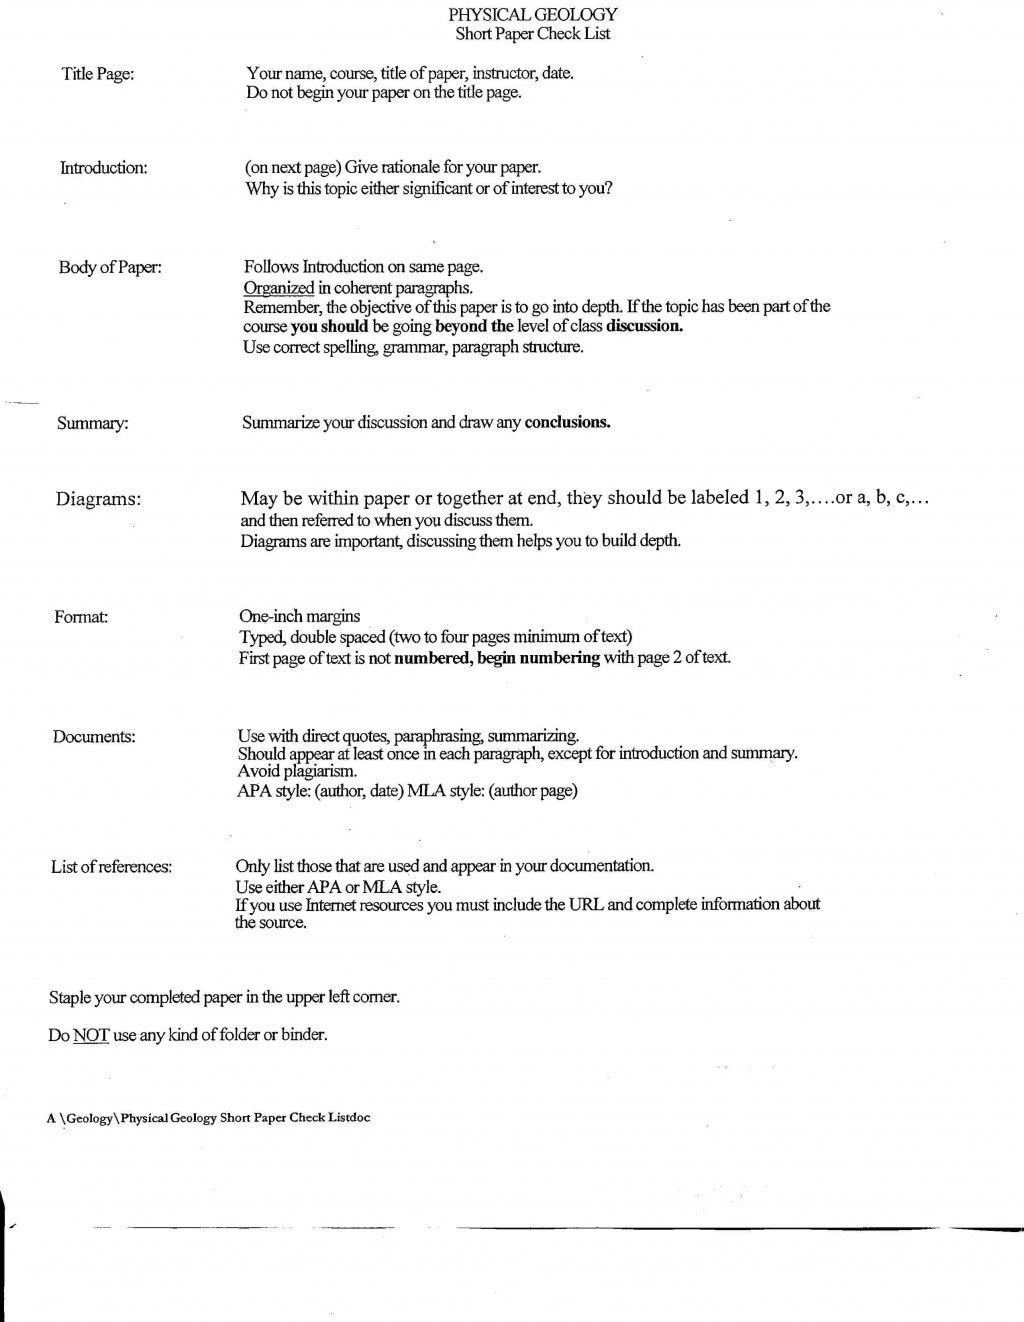 015 Research Paper Short Checklist College Papers Fascinating Format Large